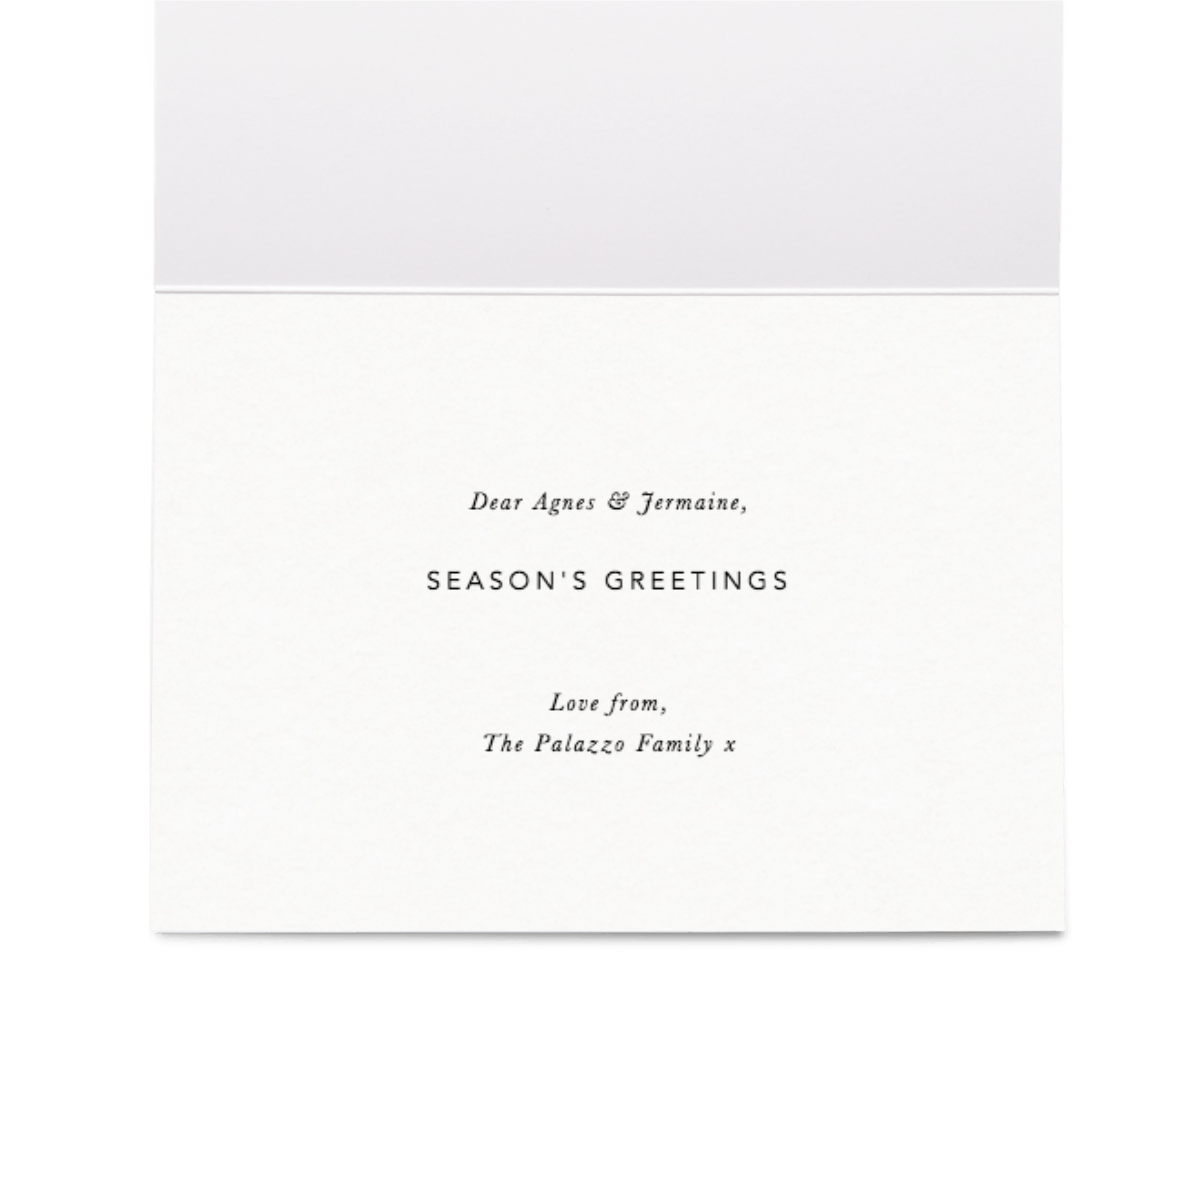 Https%3a%2f%2fwww.papier.com%2fproduct image%2f26972%2f20%2fseason s greetings starry green 6735 interieur 1542370412.png?ixlib=rb 1.1